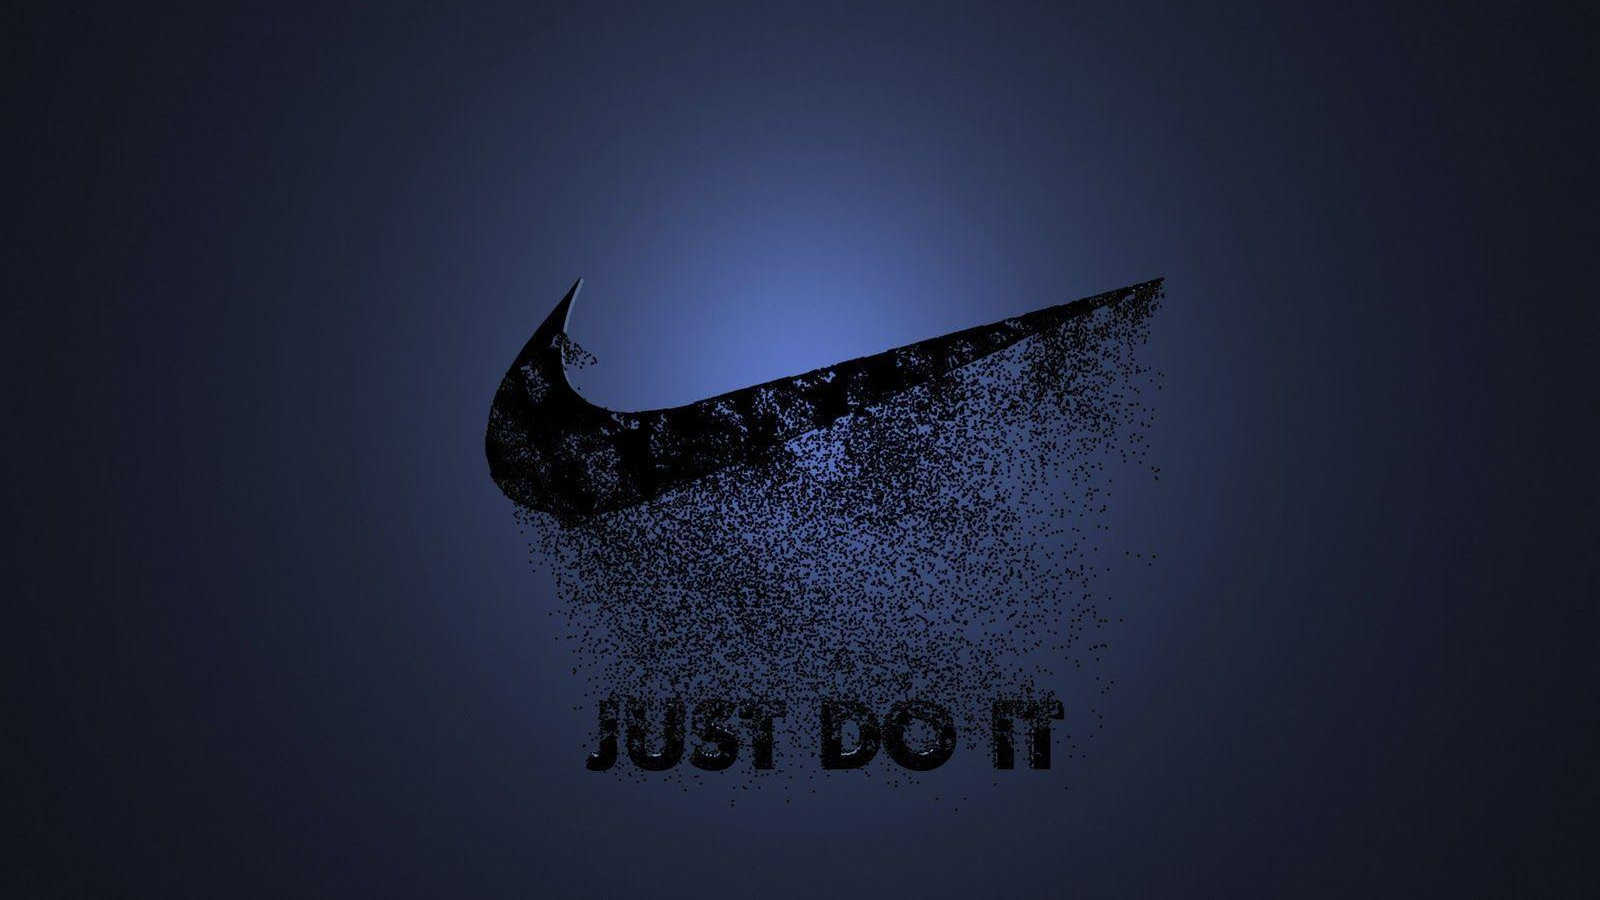 Free Download Nike Wallpapers Just Do It 1600x1000 For